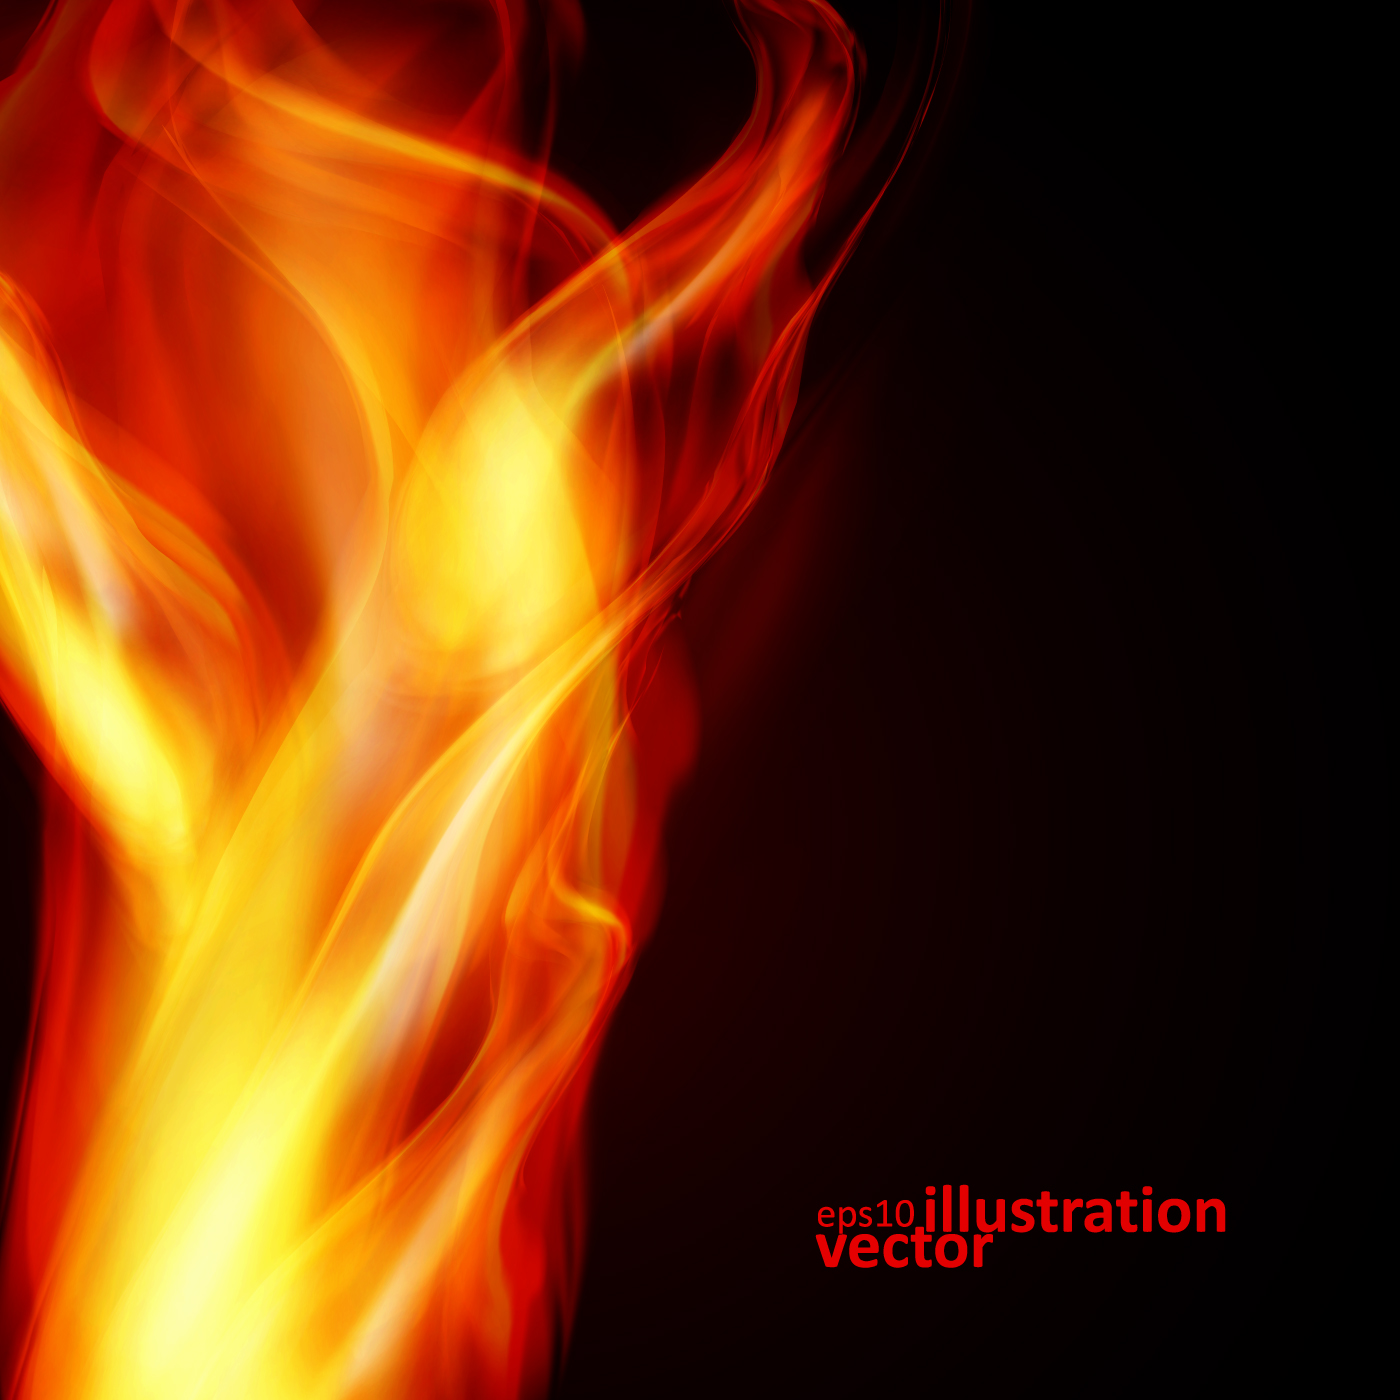 Realistic fiery background illustration vector 02 - Vector Background ...: freedesignfile.com/89998-realistic-fiery-background-illustration...